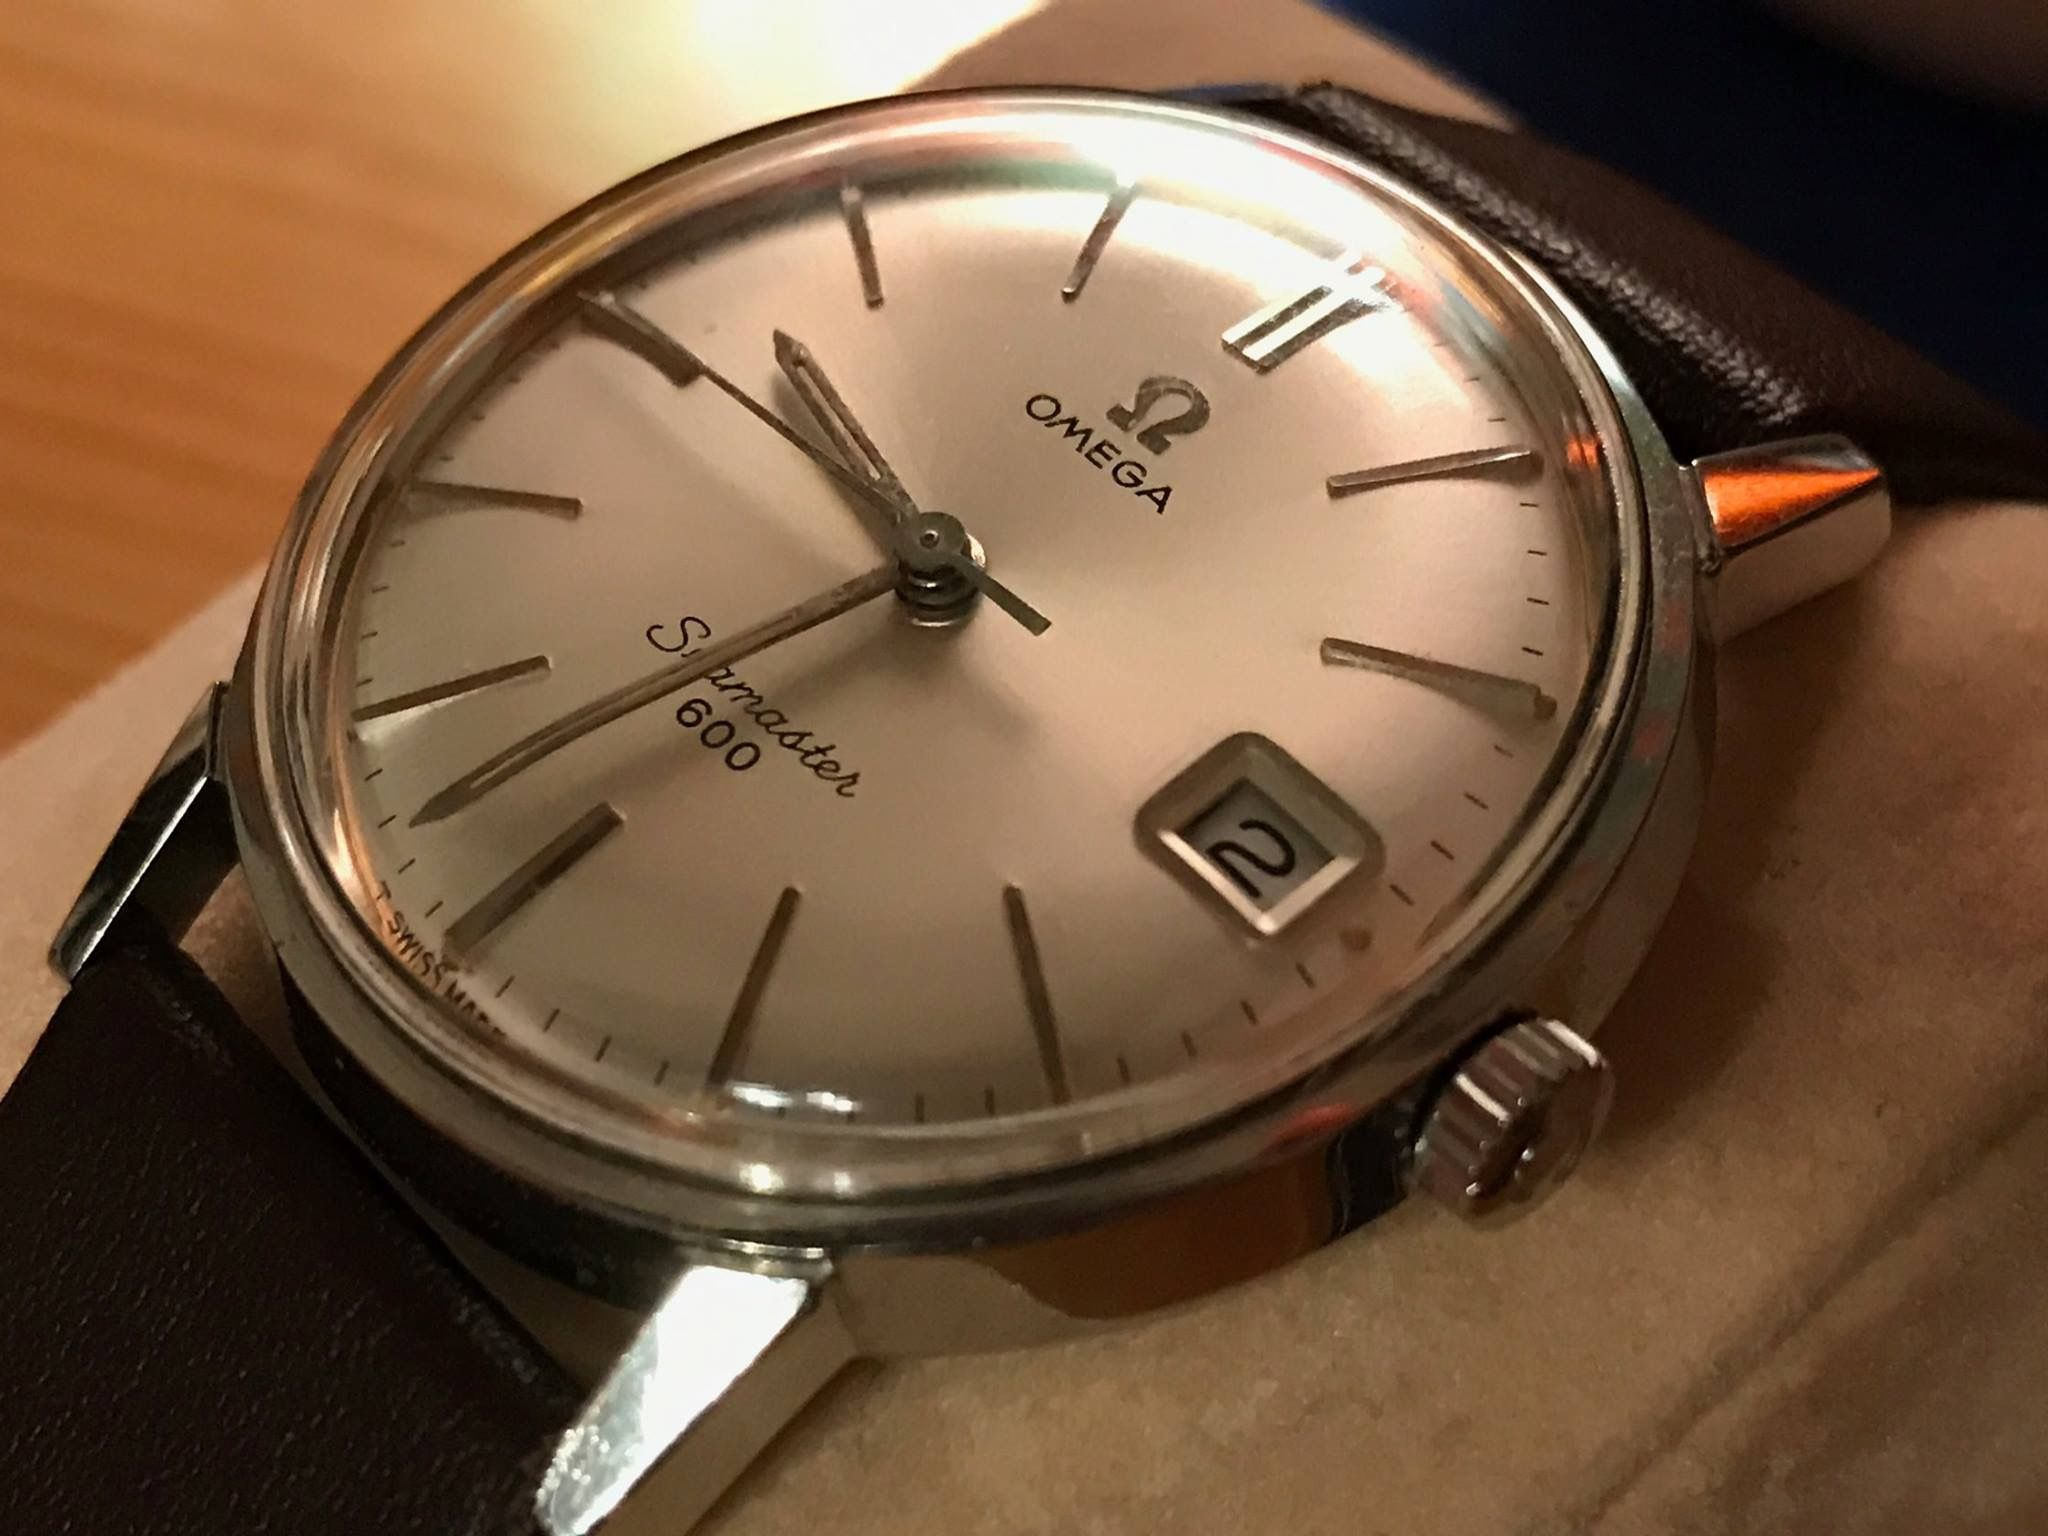 Uhr Vintage Omega Seamaster Vintage Watches In 2019 Omega Watches